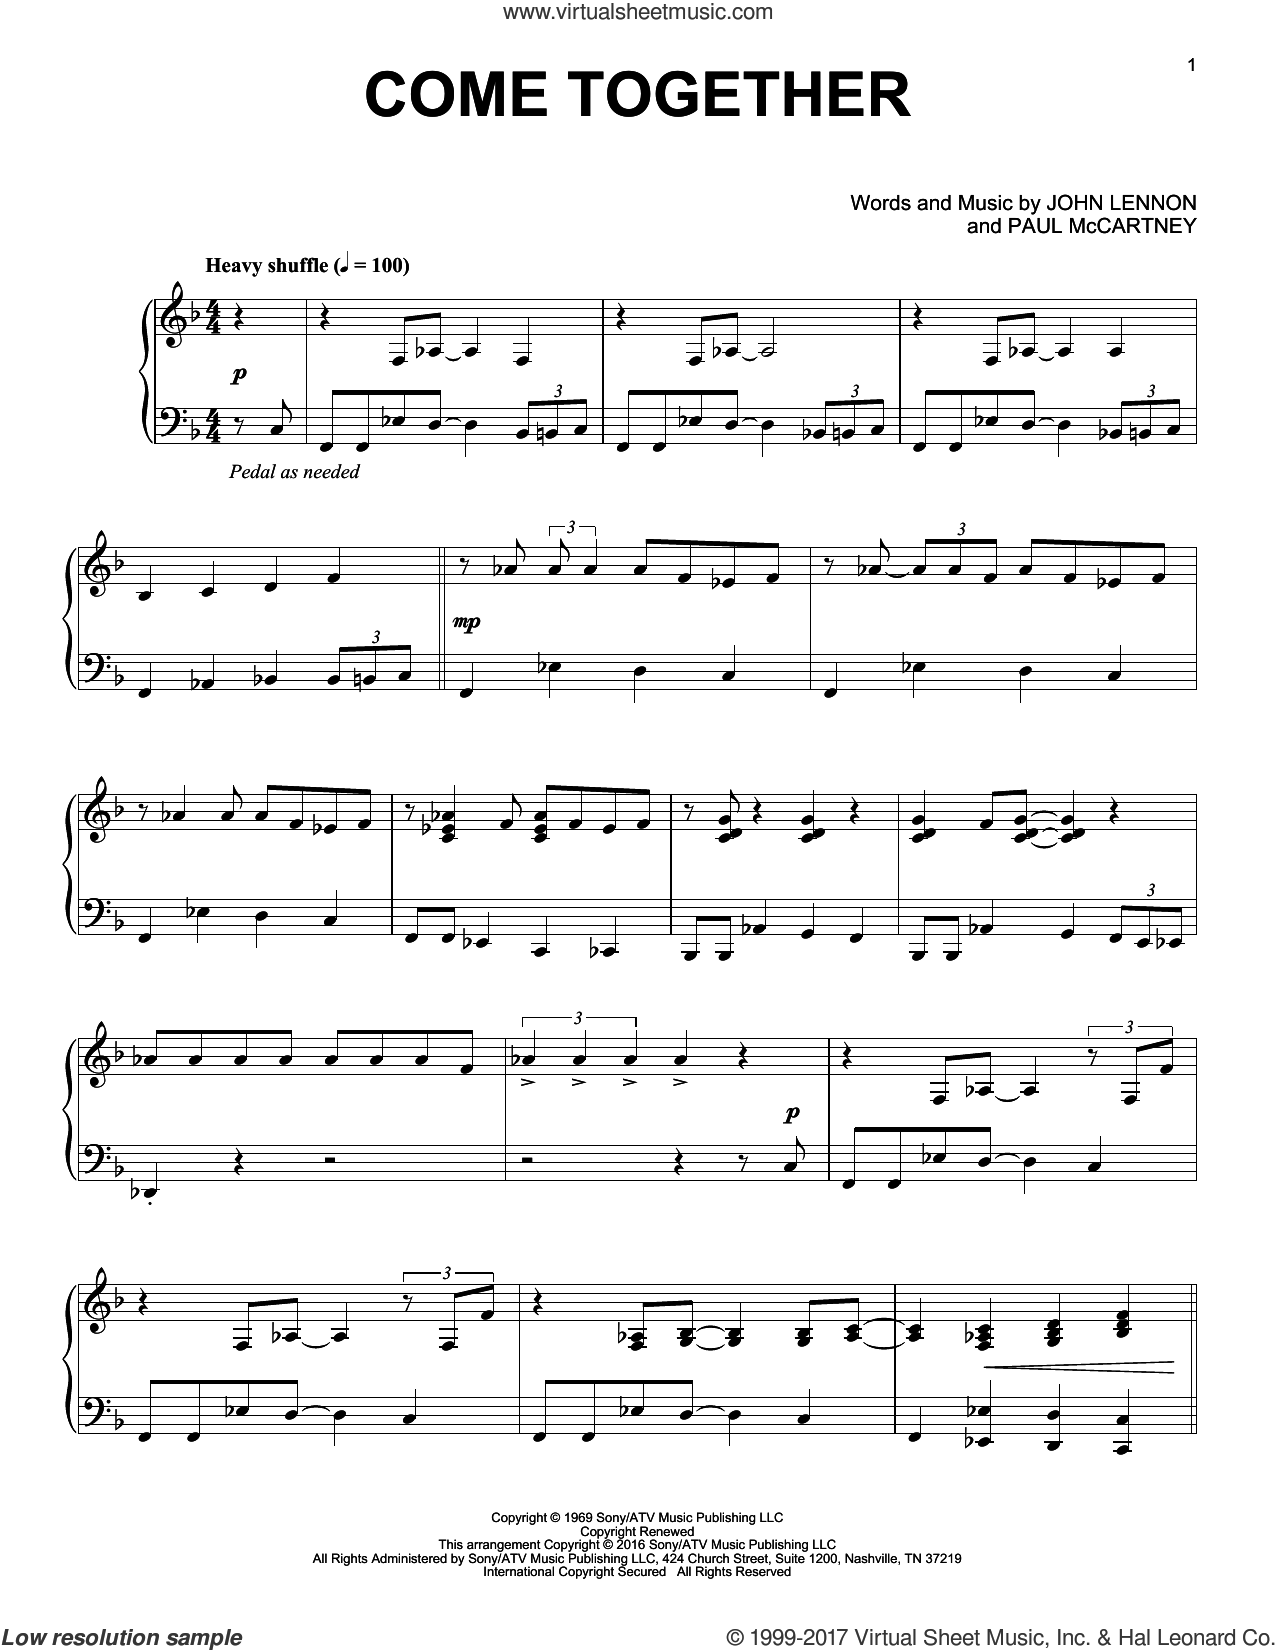 Come Together sheet music for piano solo by The Beatles, John Lennon and Paul McCartney, intermediate skill level